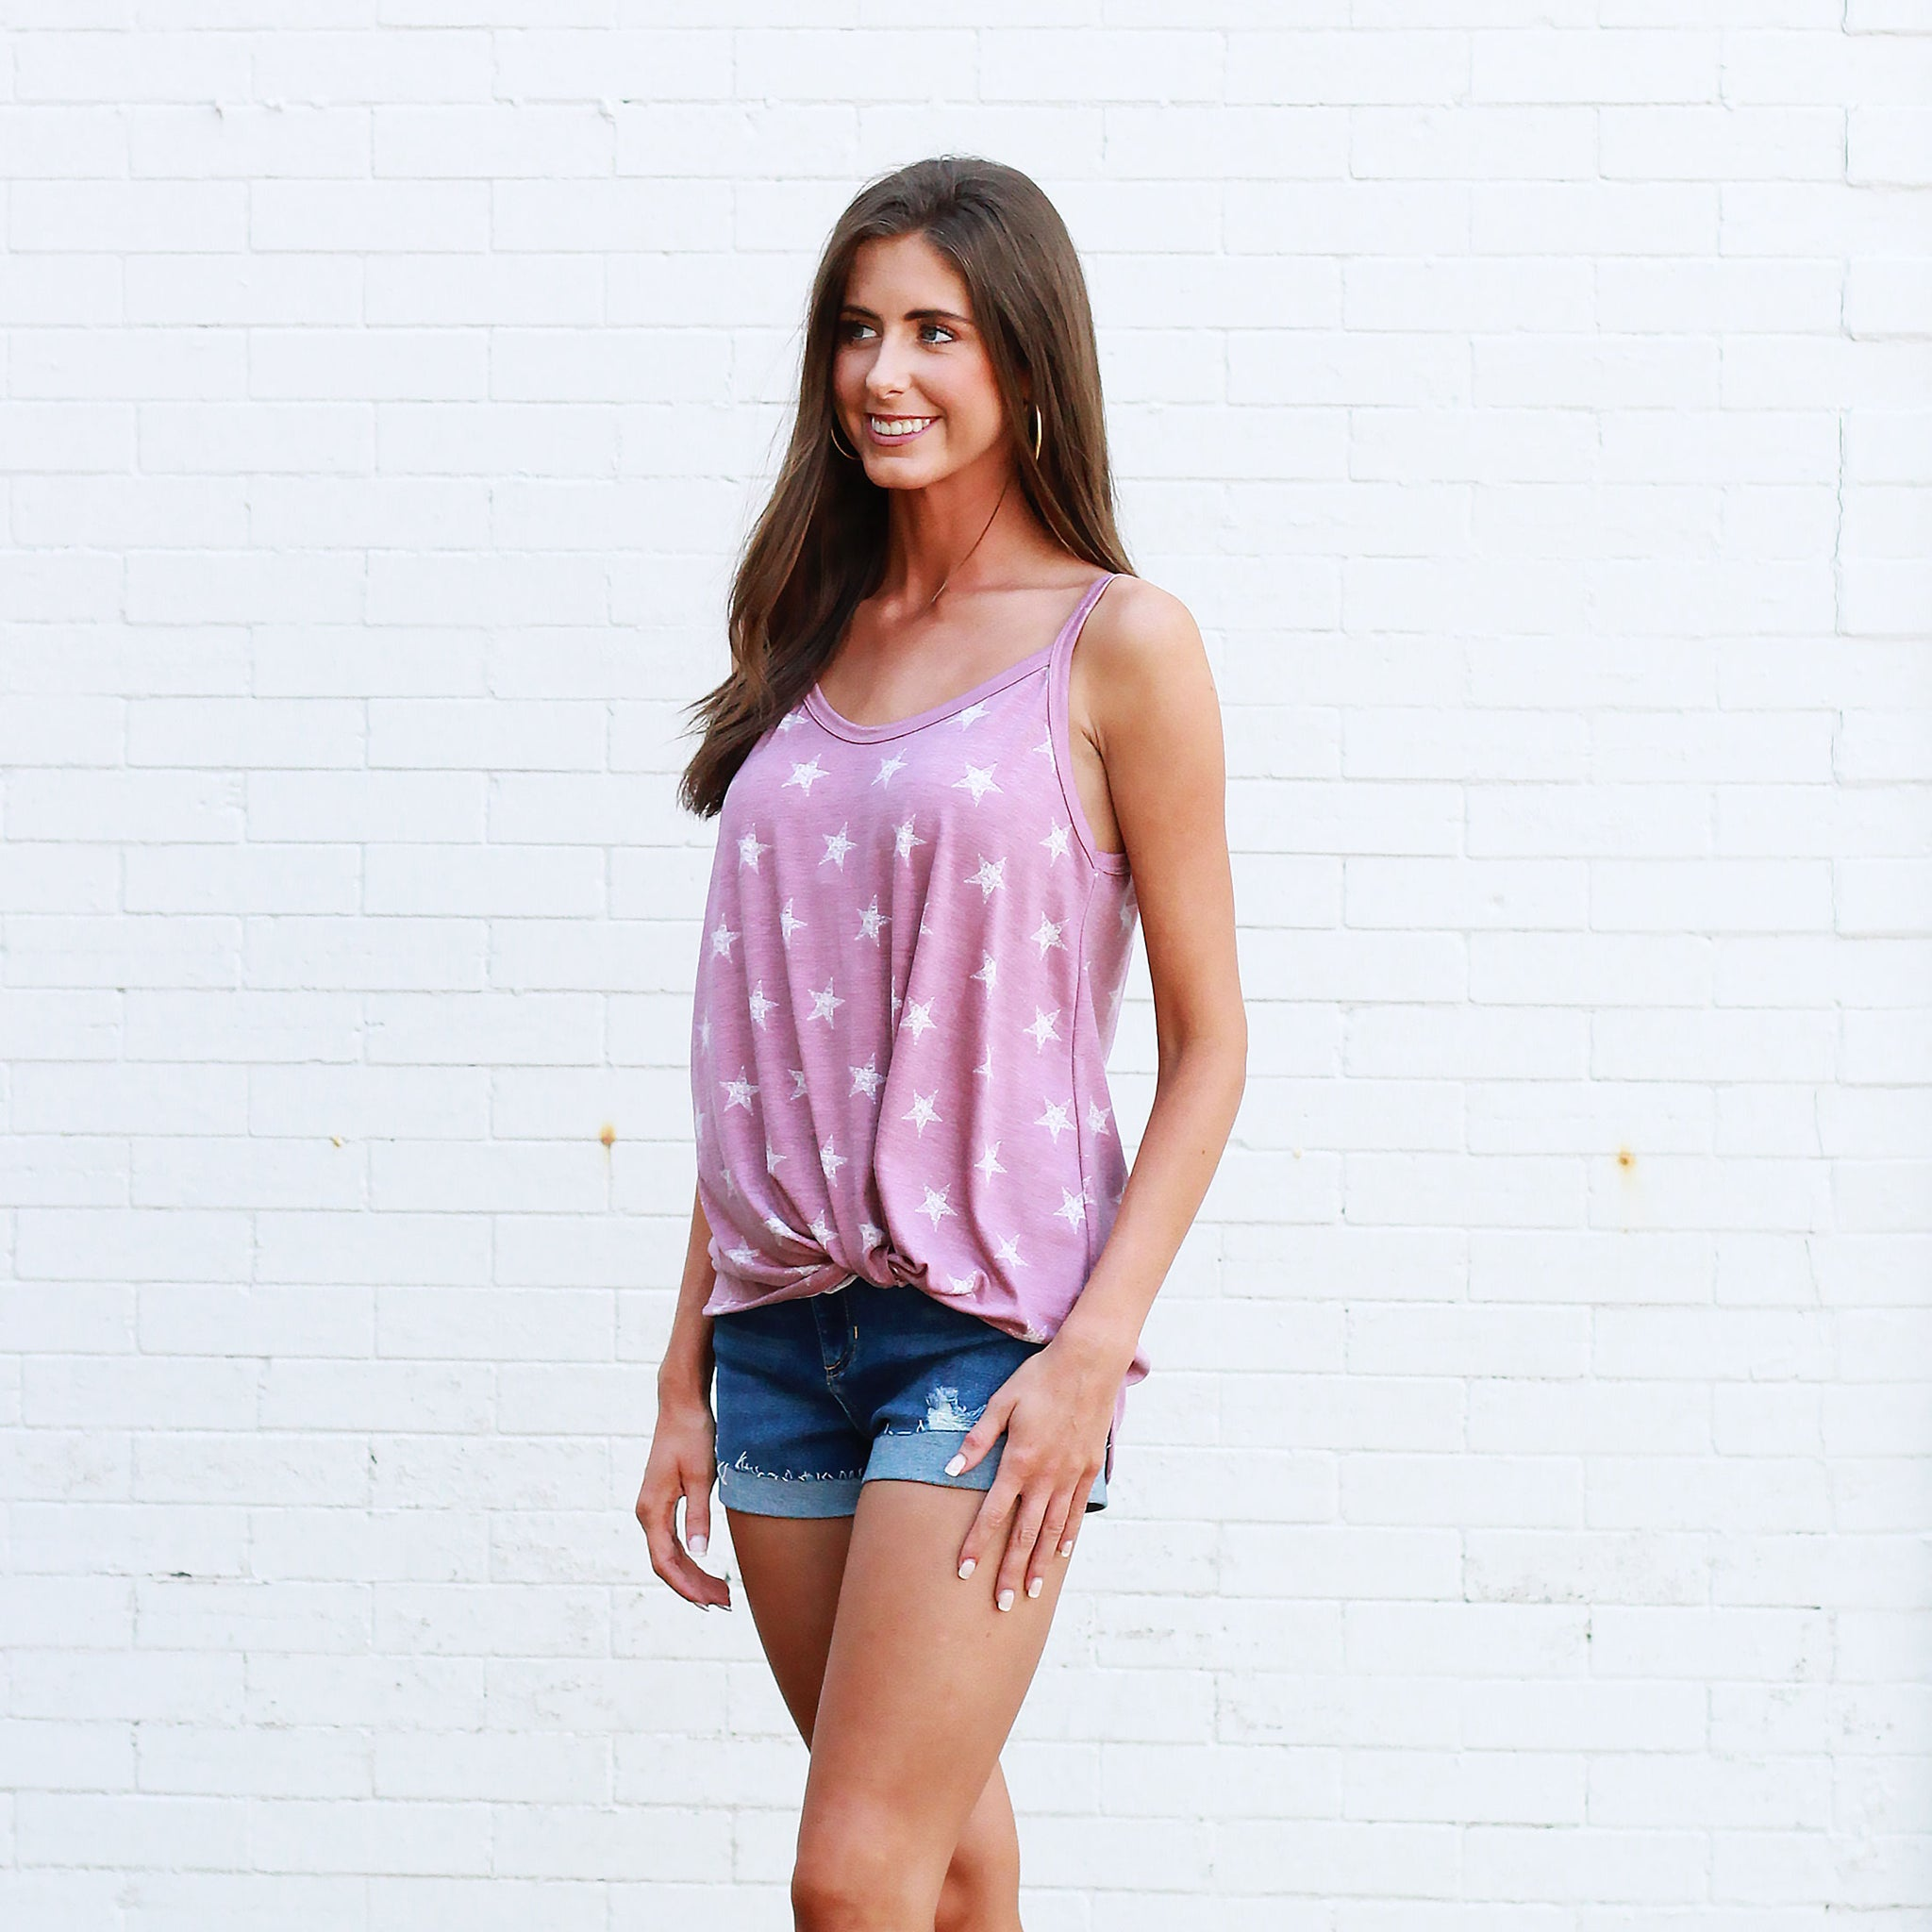 Star Struck Cami - Top - Mauve